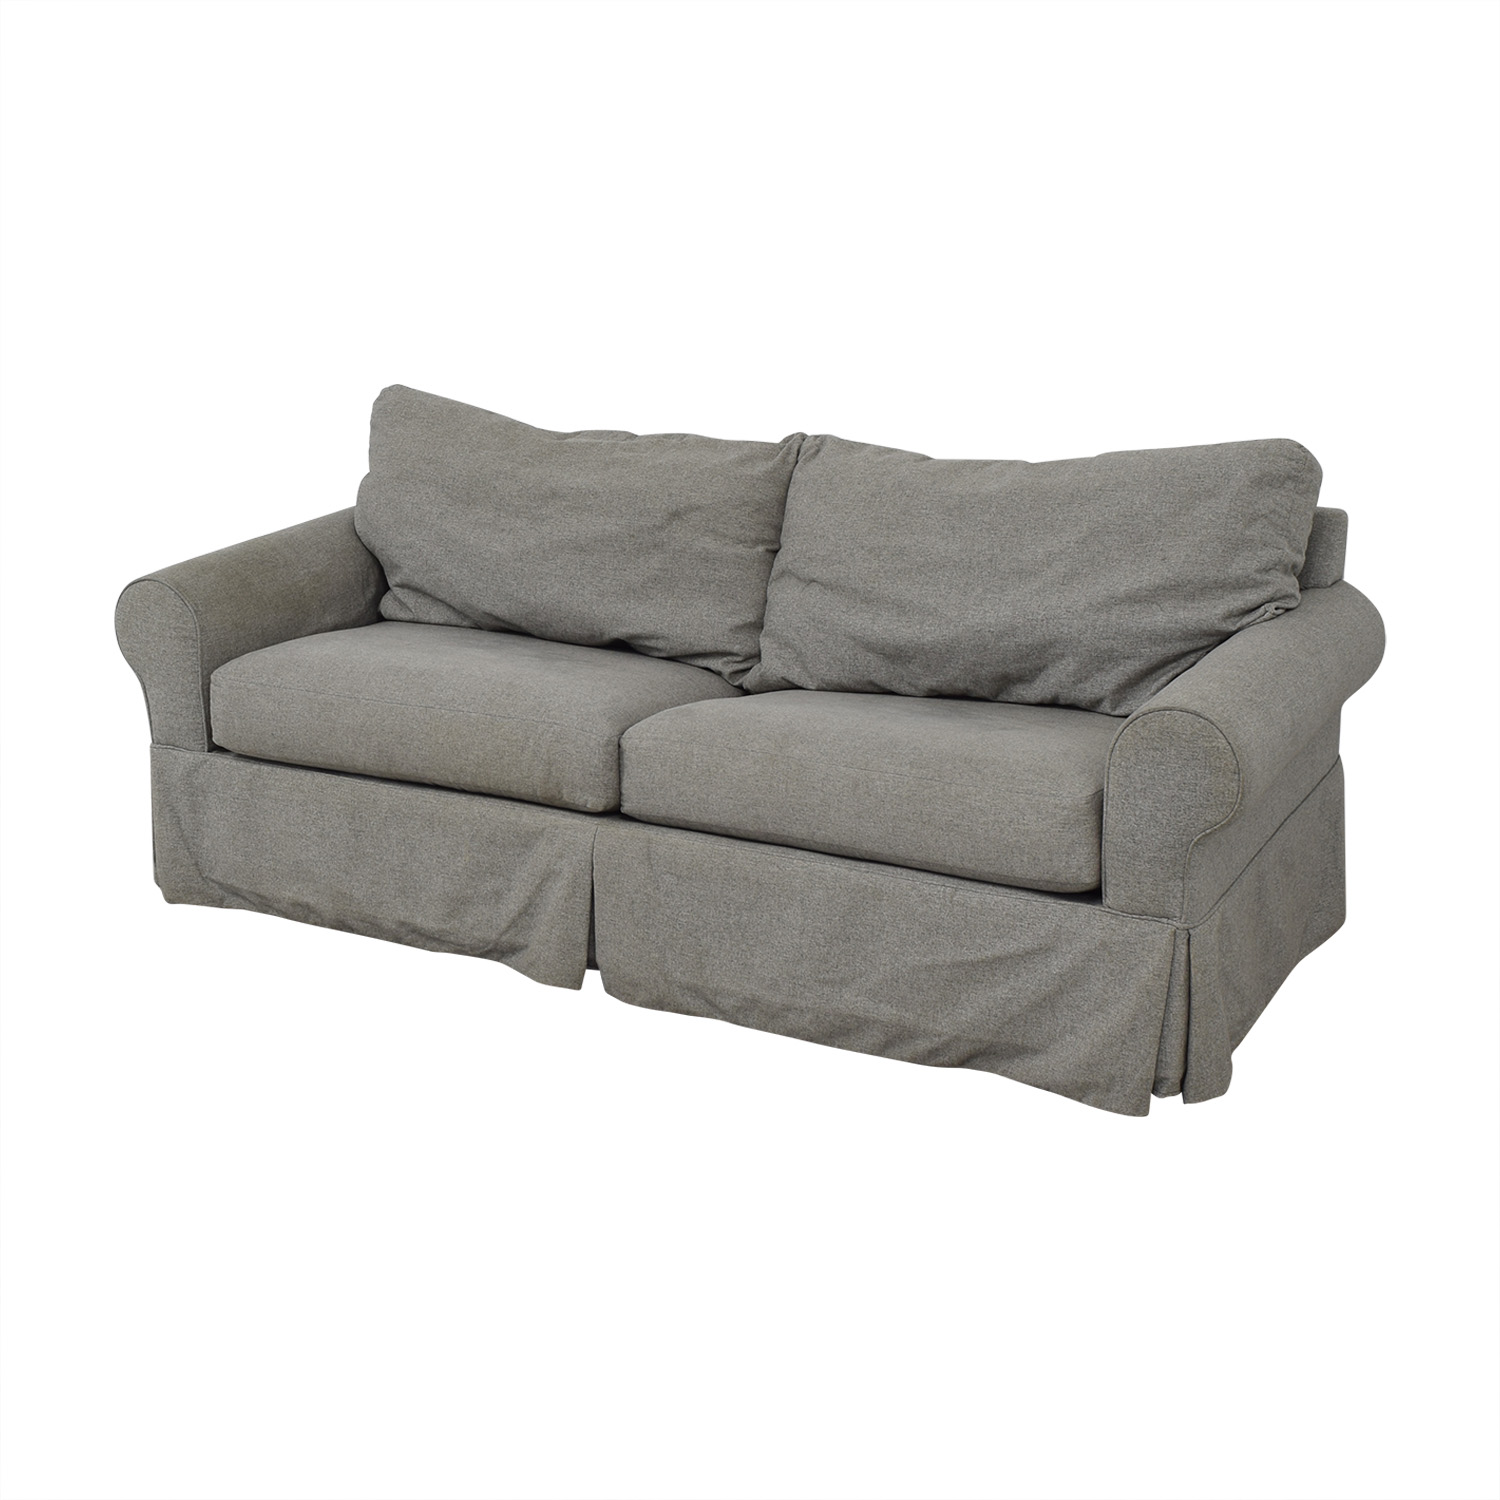 68% OFF - La-Z-Boy La-Z-Boy Full Sleeper Sofa / Sofas